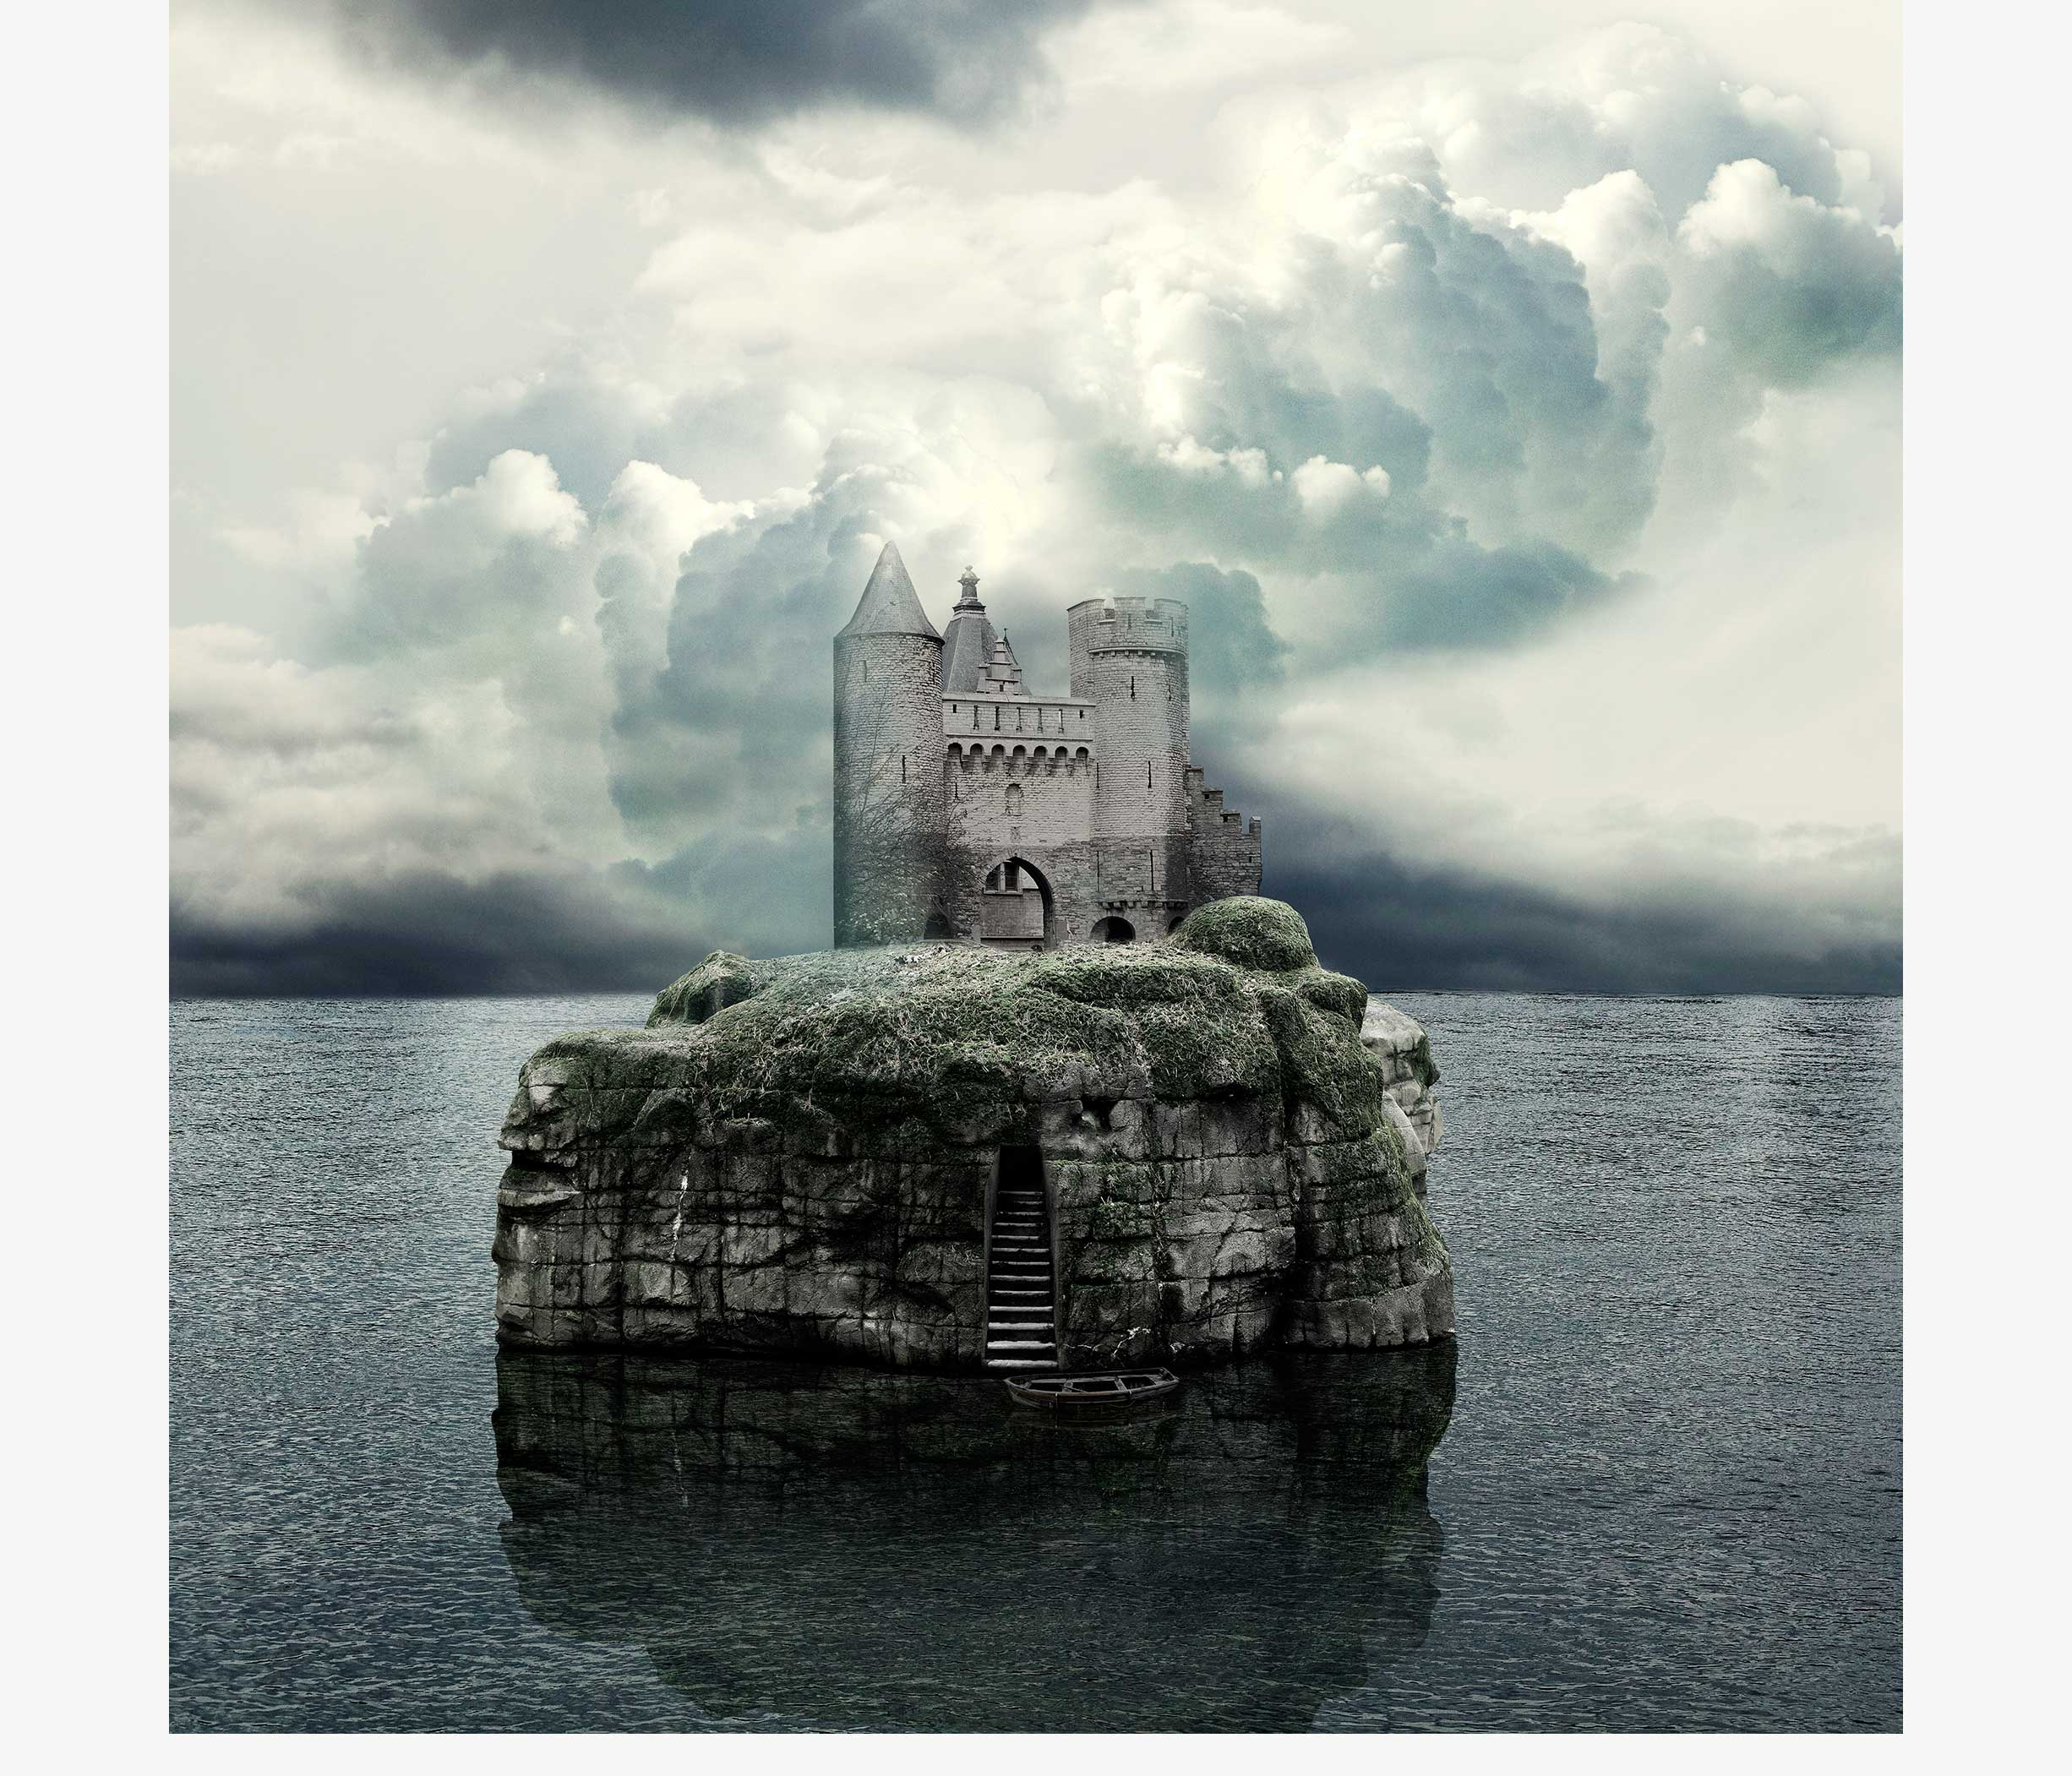 mysterious castle for the odd scenery photo serie